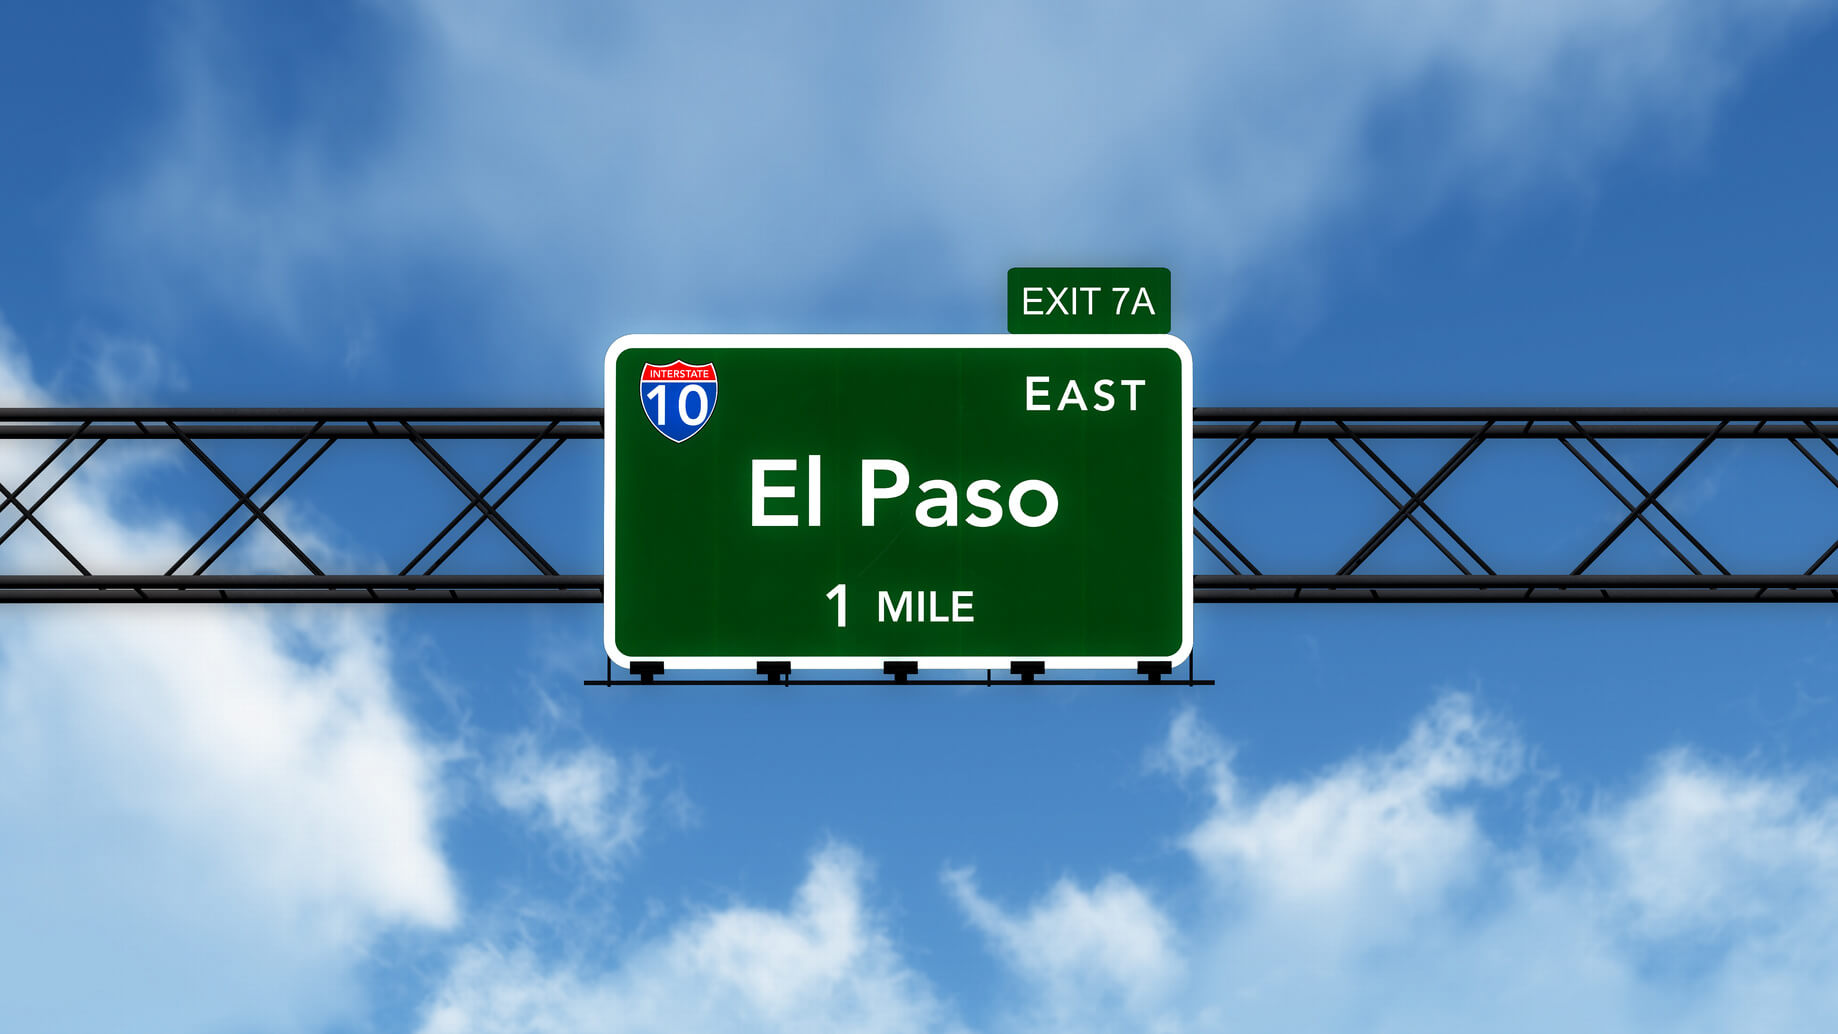 24 7 Car Key Replacement In El Paso Tx Licensed Experts